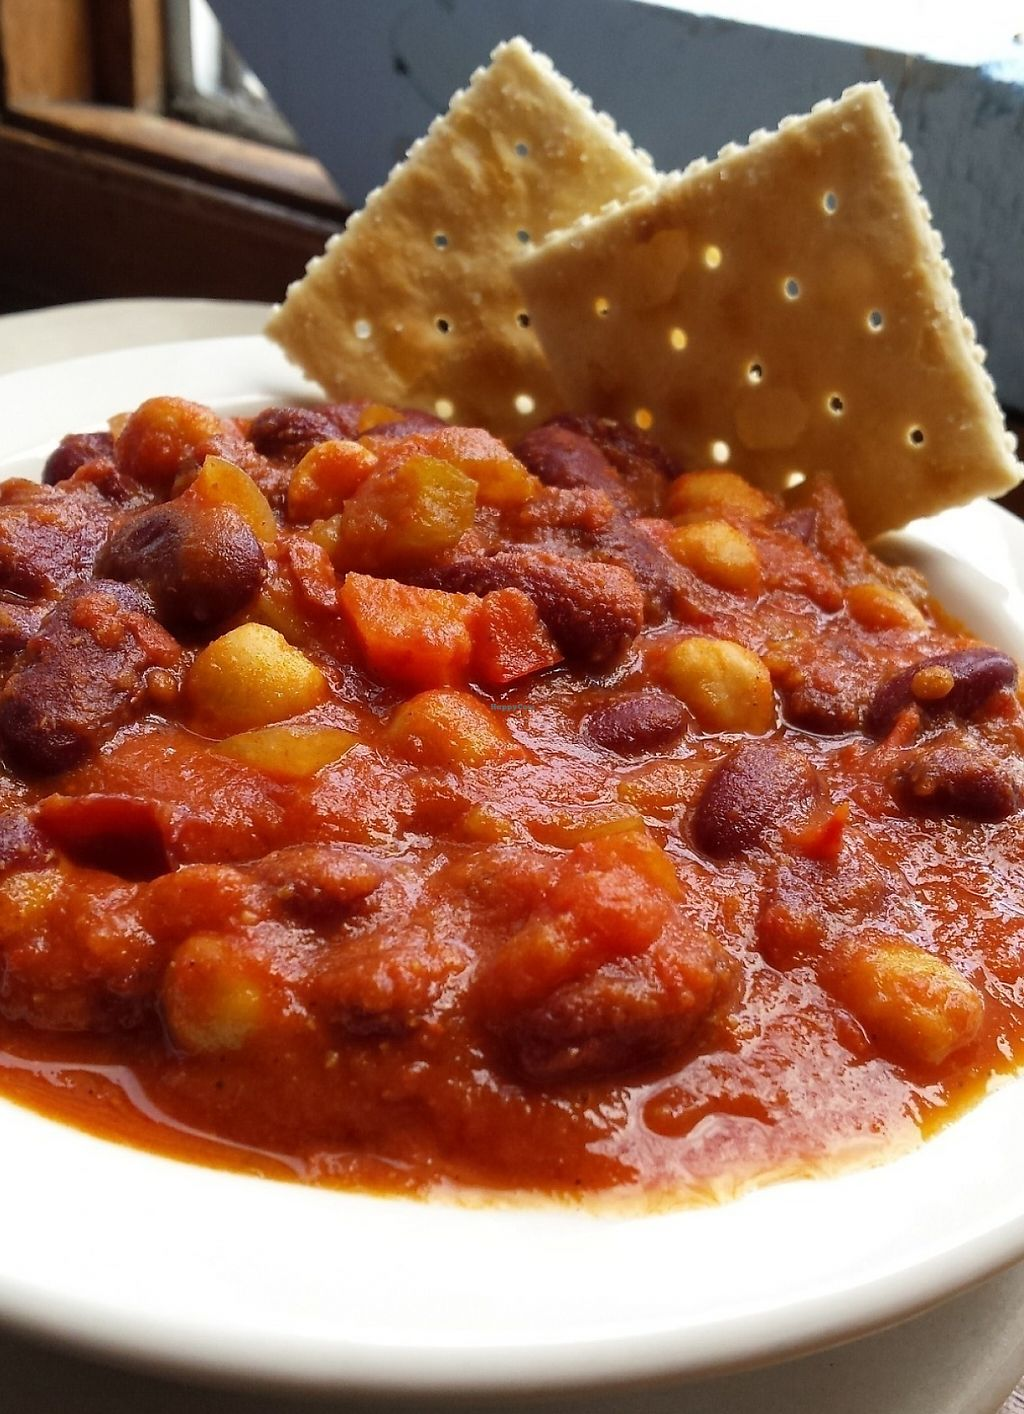 """Photo of Domus Fare  by <a href=""""/members/profile/American%20Vegan"""">American Vegan</a> <br/>Vegan chili !!! <br/> July 16, 2016  - <a href='/contact/abuse/image/56718/209848'>Report</a>"""